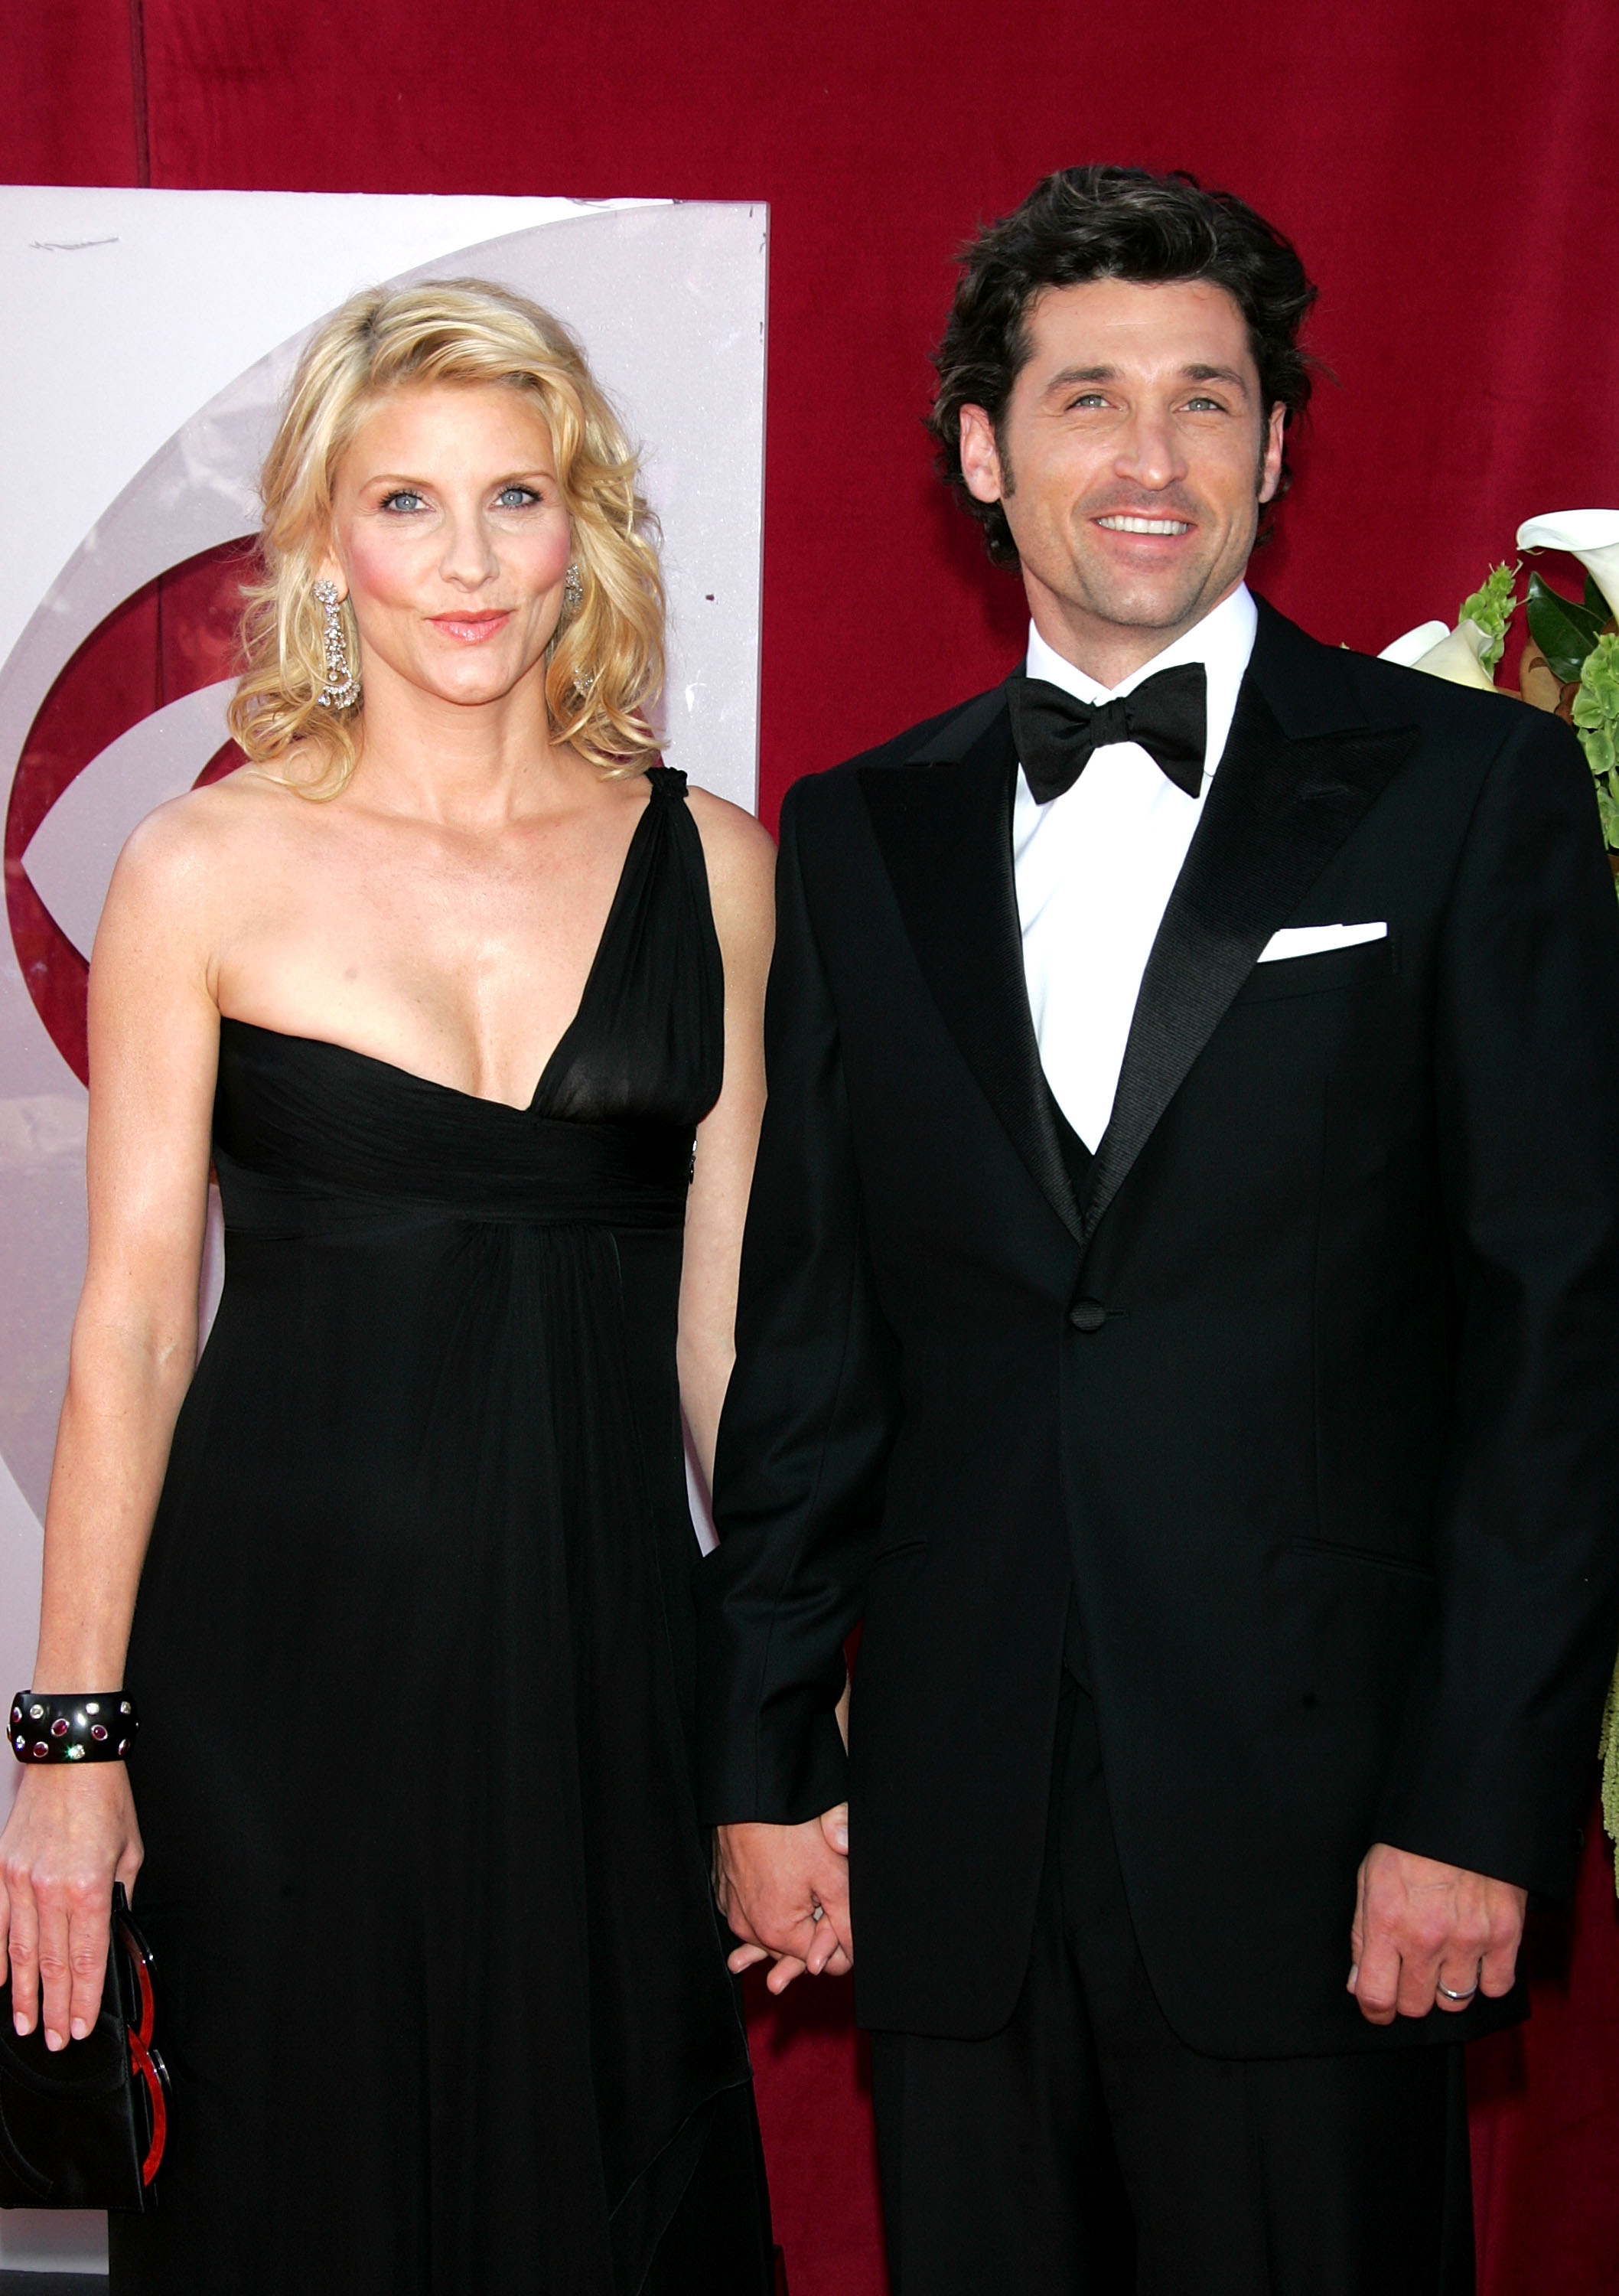 Patrick Dempsey Wife Jillian In Happier Times Access Online